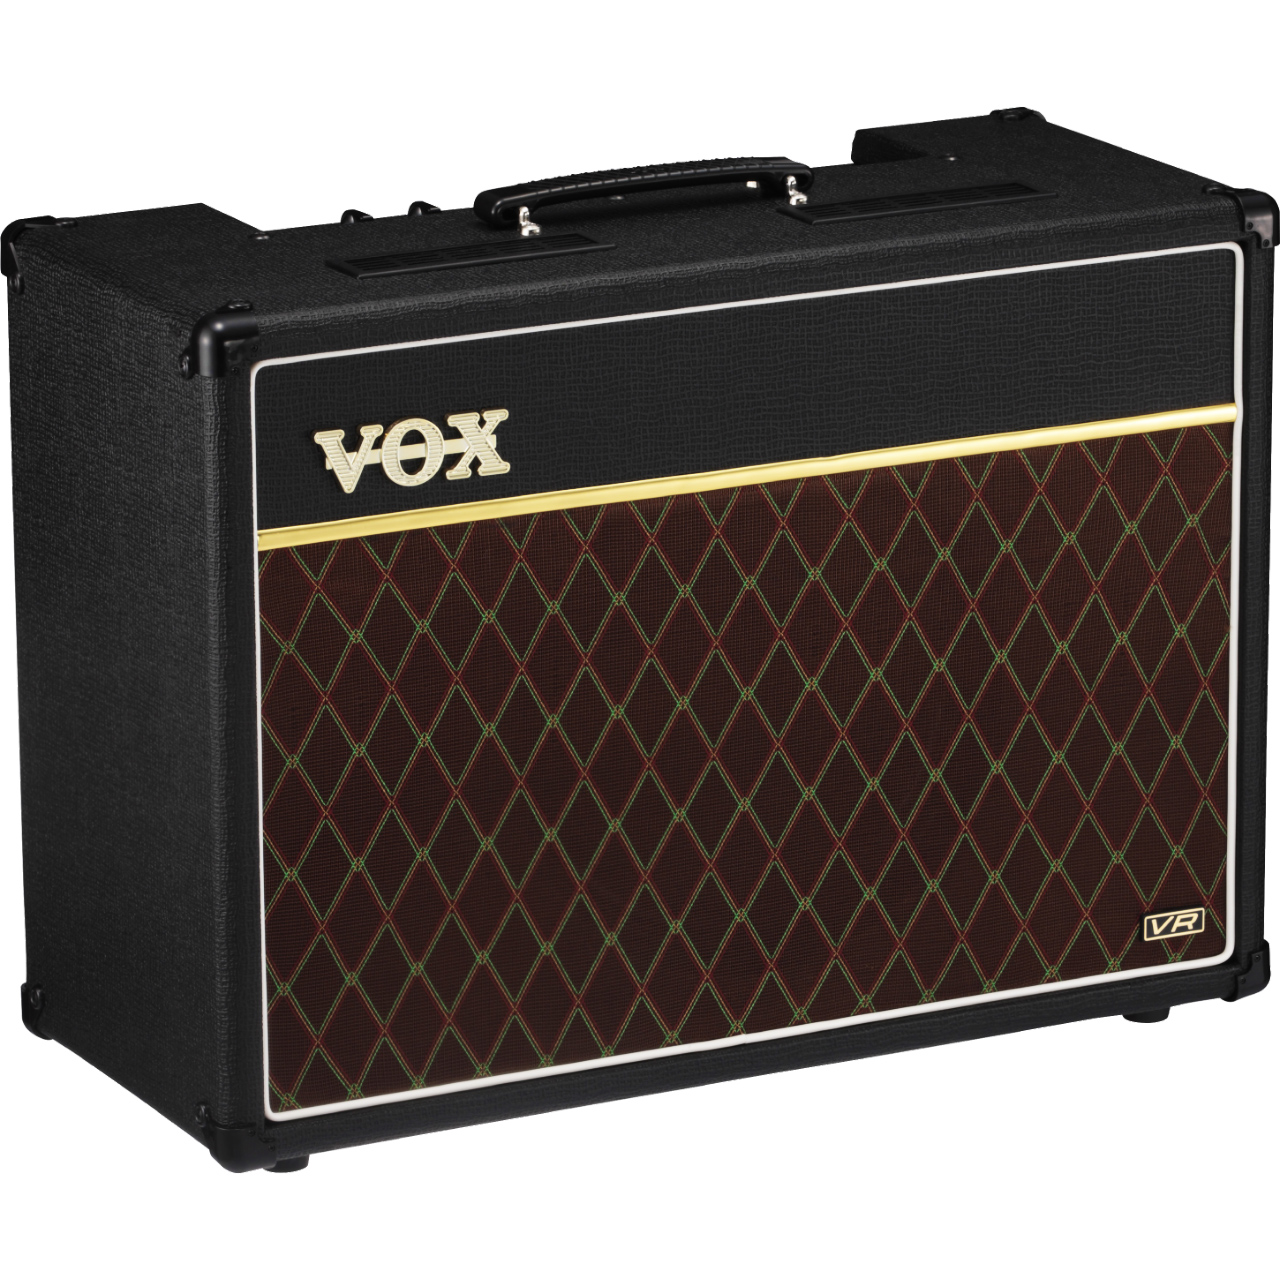 Vox V112tv Cabinet Wts Vox Guitar Amp Anyone Price Updated